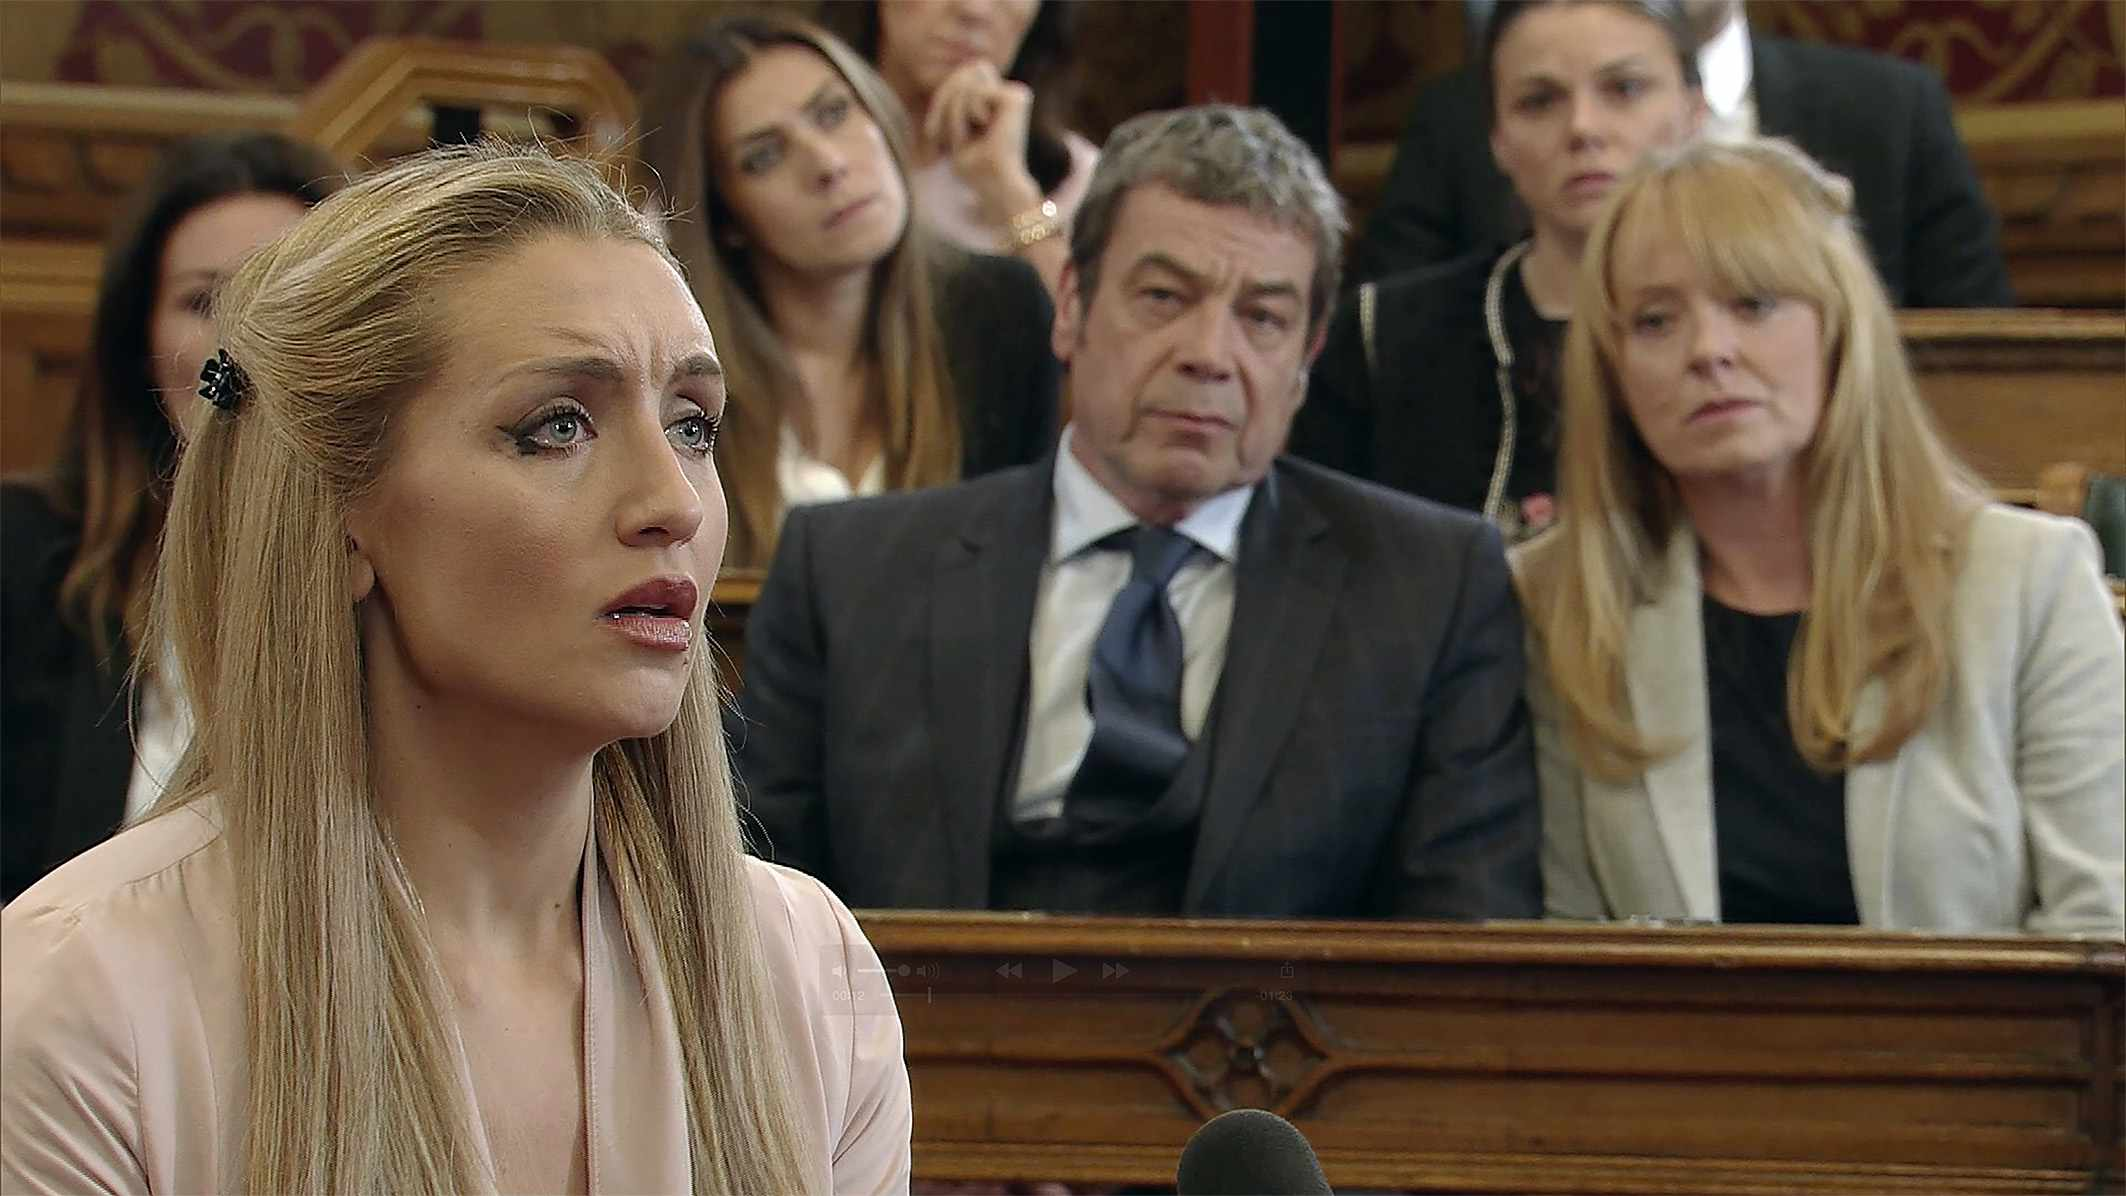 FROM ITV   STRICT EMBARGO - No Use Before Tuesday 24th July 2018  Coronation Street - Ep 9524  Friday 3rd August 2018 - 1st Ep  Johnny Connor [RICHARD HAWLEY] is bereft thinking he may never see his granddaughter again after finding out about Eva's departure.  Picture contact - david.crook@itv.com  This photograph is (C) ITV Plc and can only be reproduced for editorial purposes directly in connection with the programme or event mentioned above, or ITV plc. Once made available by ITV plc Picture Desk, this photograph can be reproduced once only up until the transmission [TX] date and no reproduction fee will be charged. Any subsequent usage may incur a fee. This photograph must not be manipulated [excluding basic cropping] in a manner which alters the visual appearance of the person photographed deemed detrimental or inappropriate by ITV plc Picture Desk. This photograph must not be syndicated to any other company, publication or website, or permanently archived, without the express written permission of ITV Plc Picture Desk. Full Terms and conditions are available on the website www.itvpictures.com